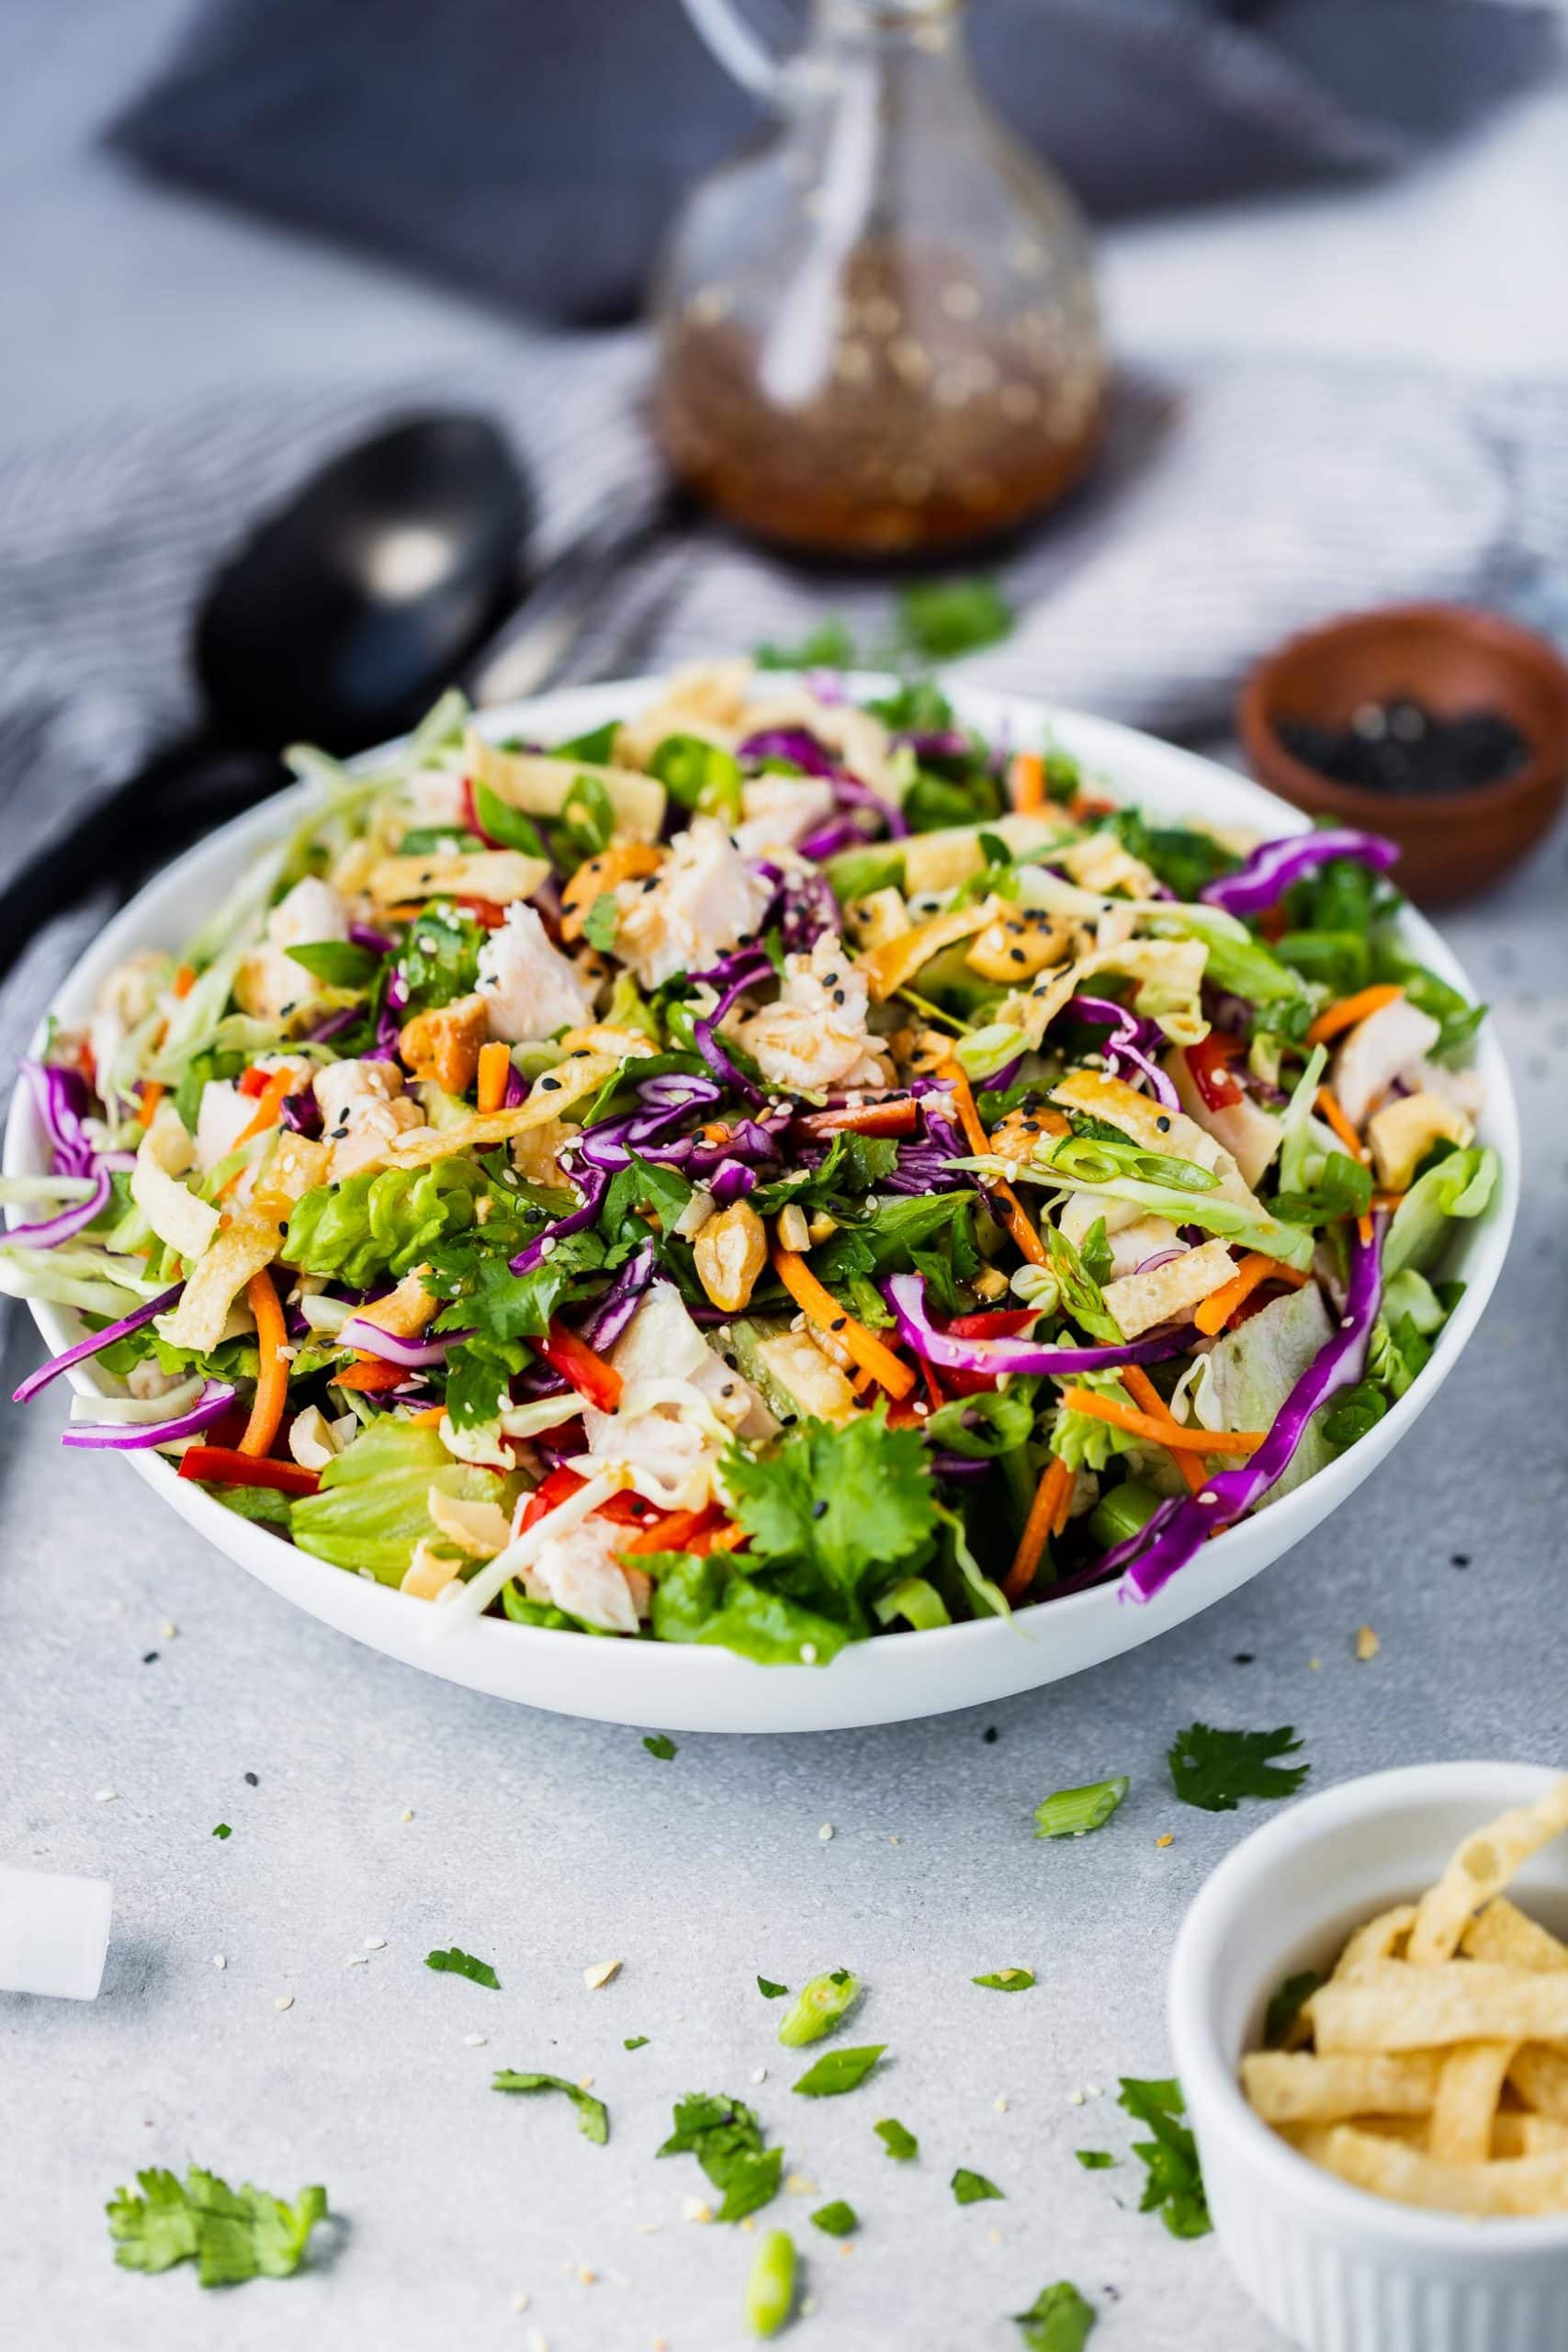 Picture of Chinese chicken salad in a large white bowl.